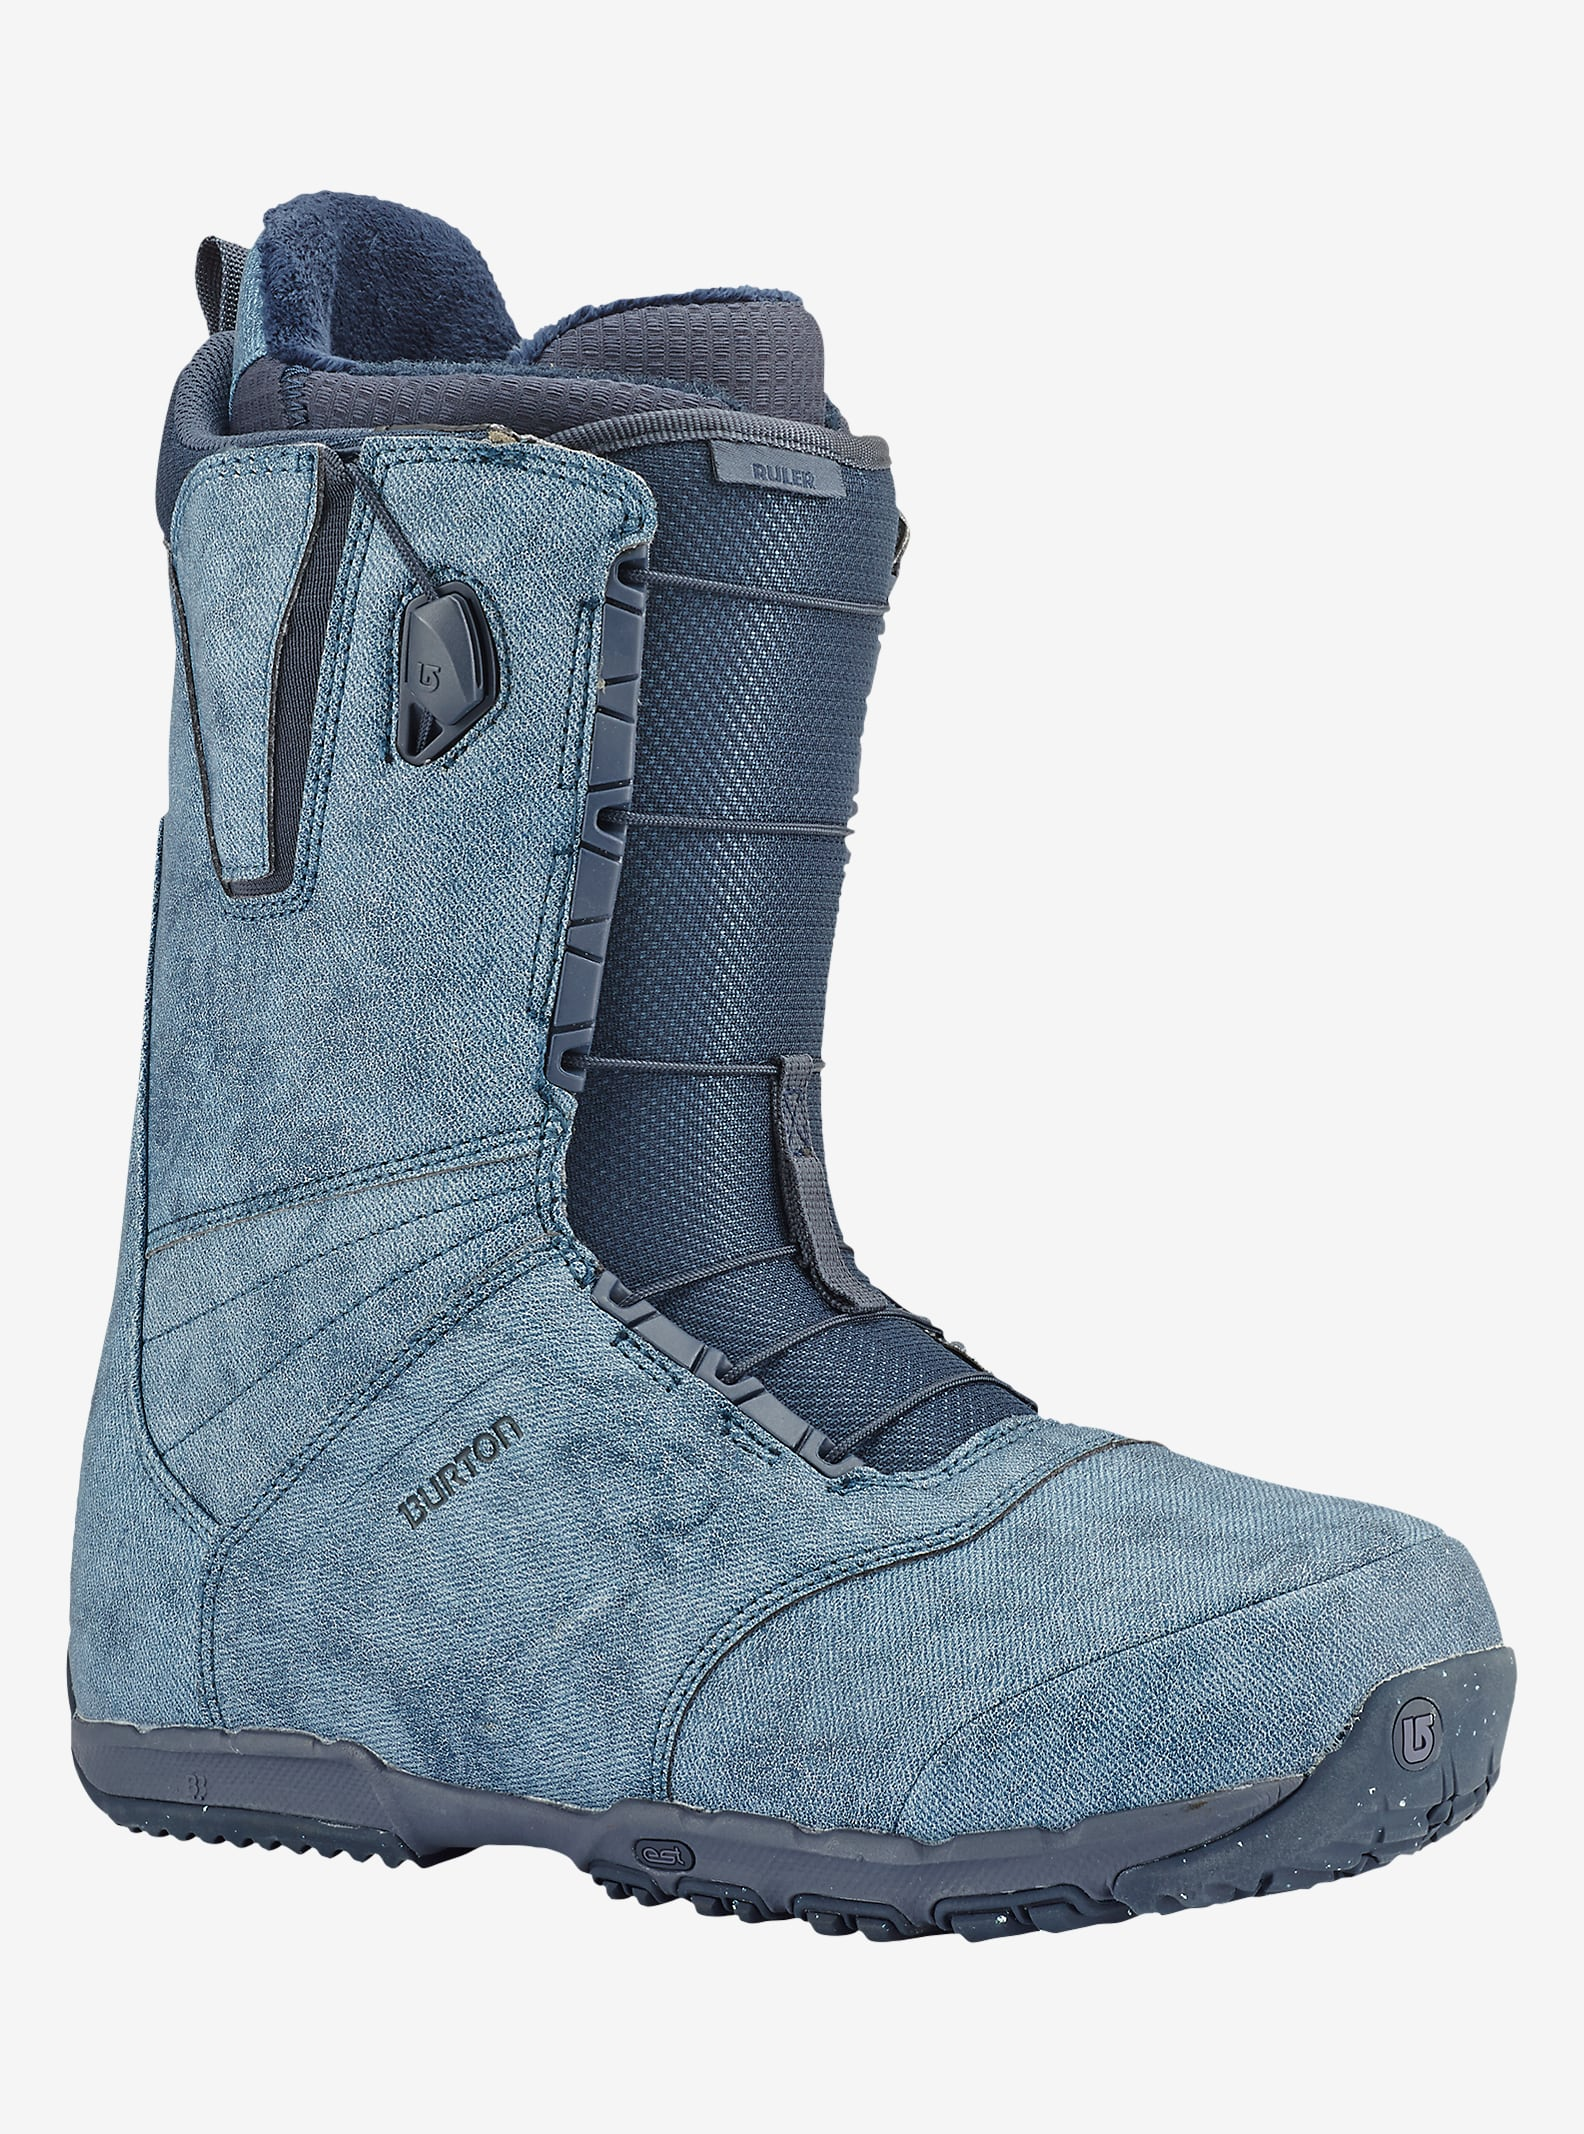 Burton Ruler Snowboard Boot shown in Denim